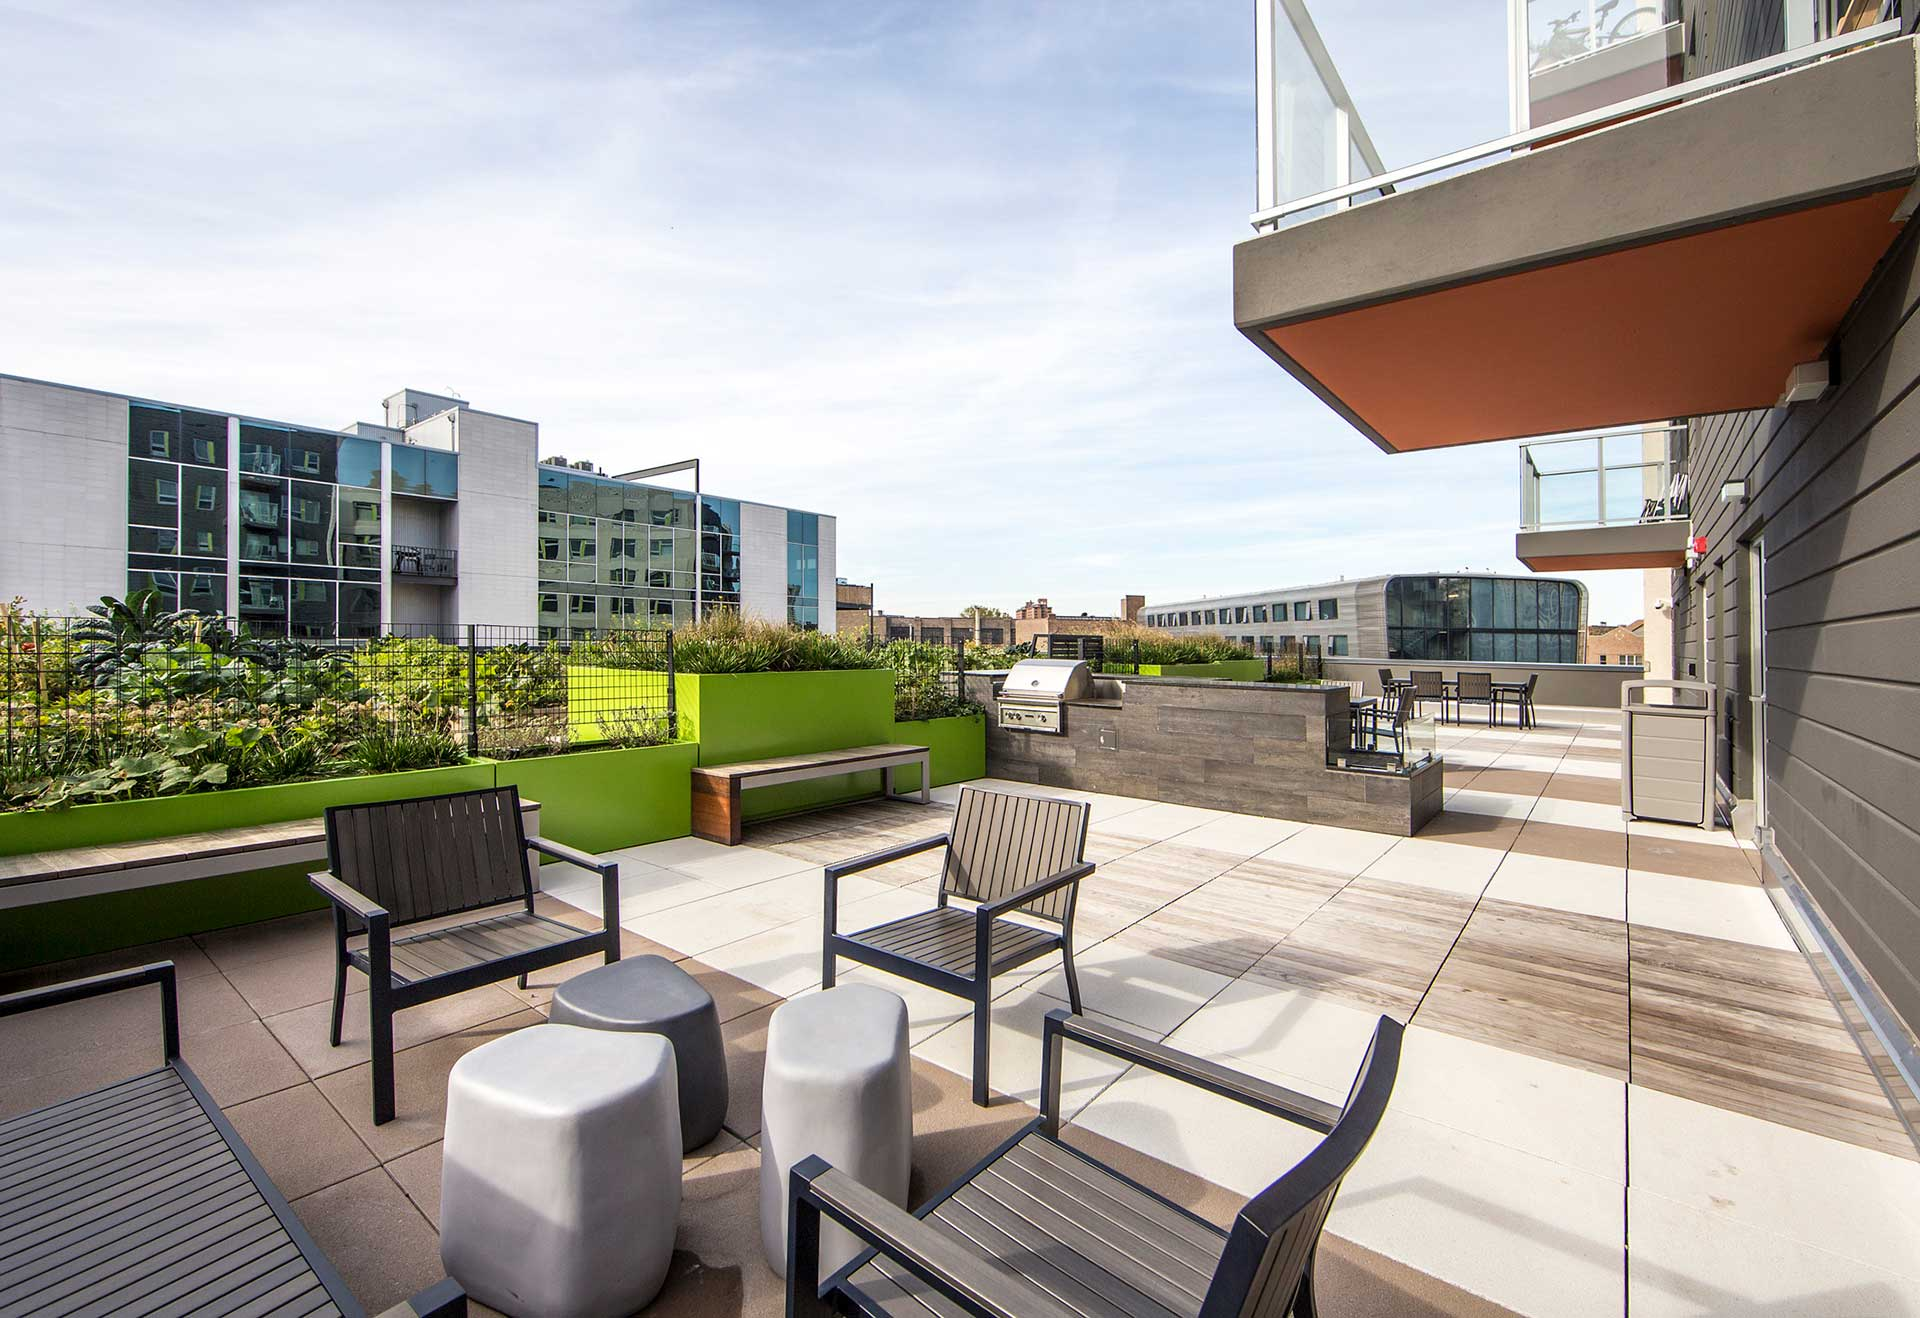 Roof deck seating area at Clybourn 1200